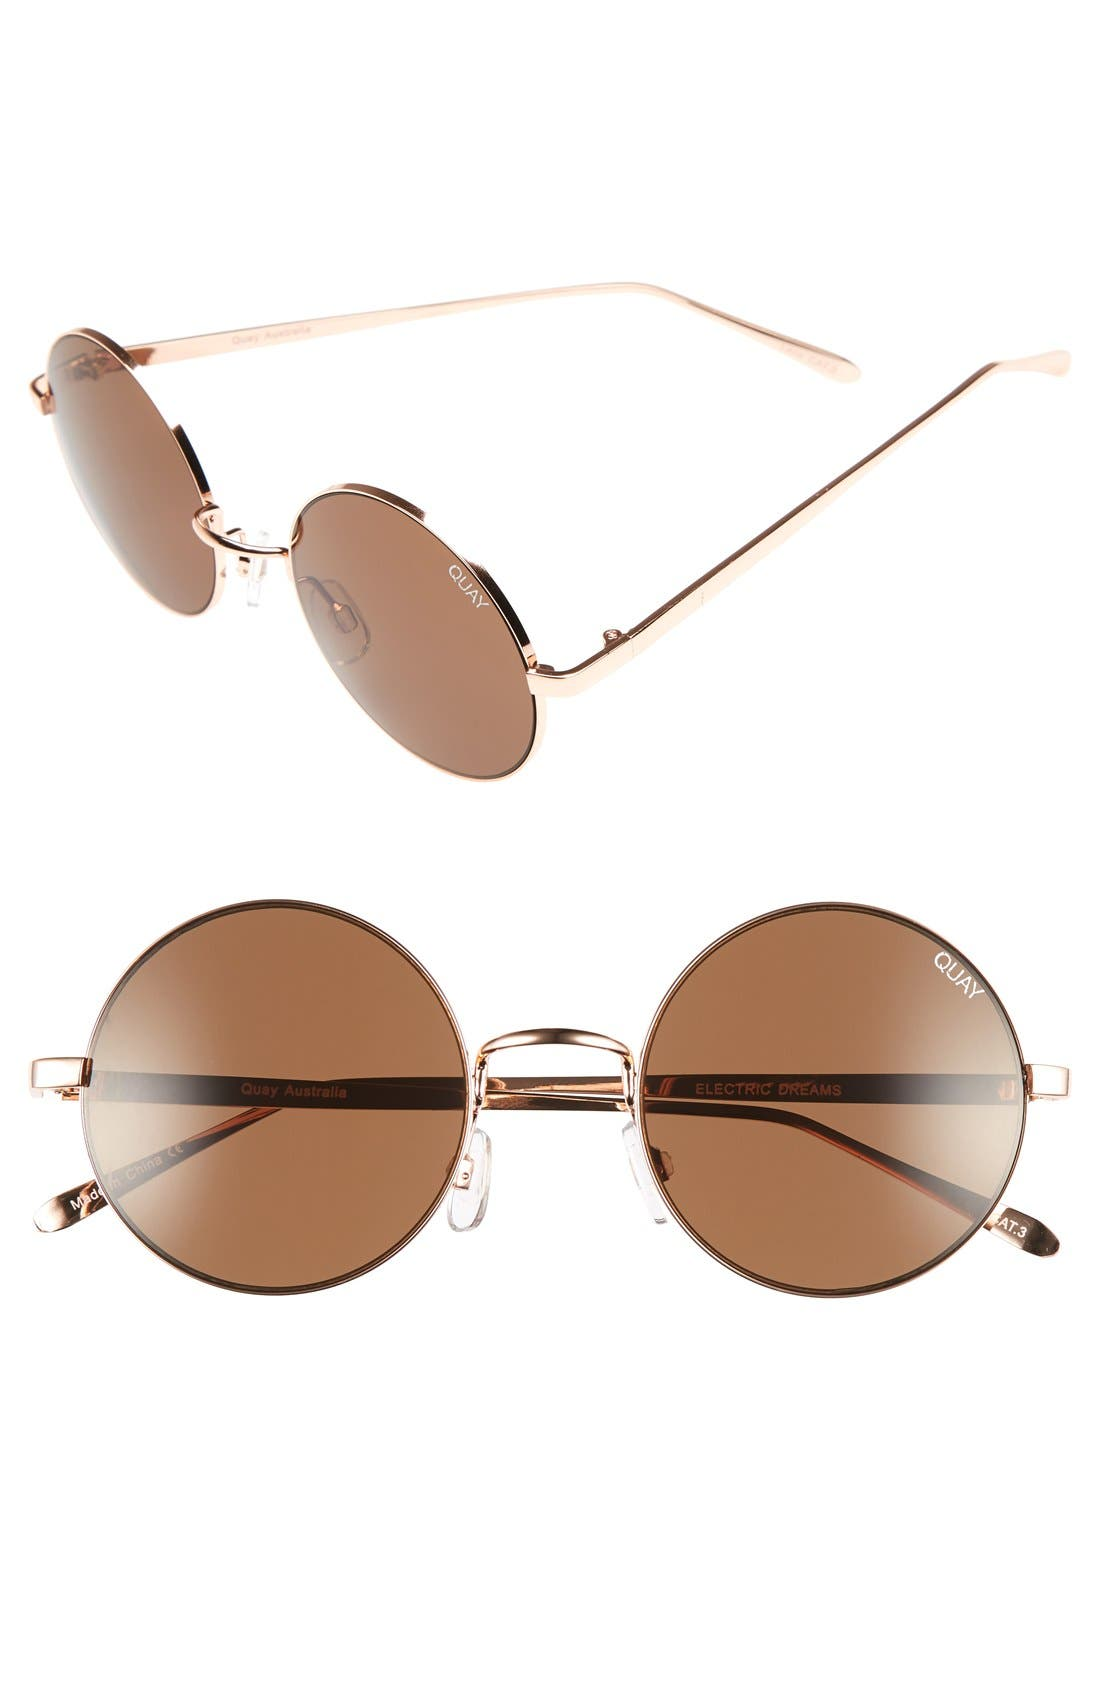 'Electric Dreams' 52mm Round Sunglasses,                             Main thumbnail 1, color,                             Rose Gold/ Brown